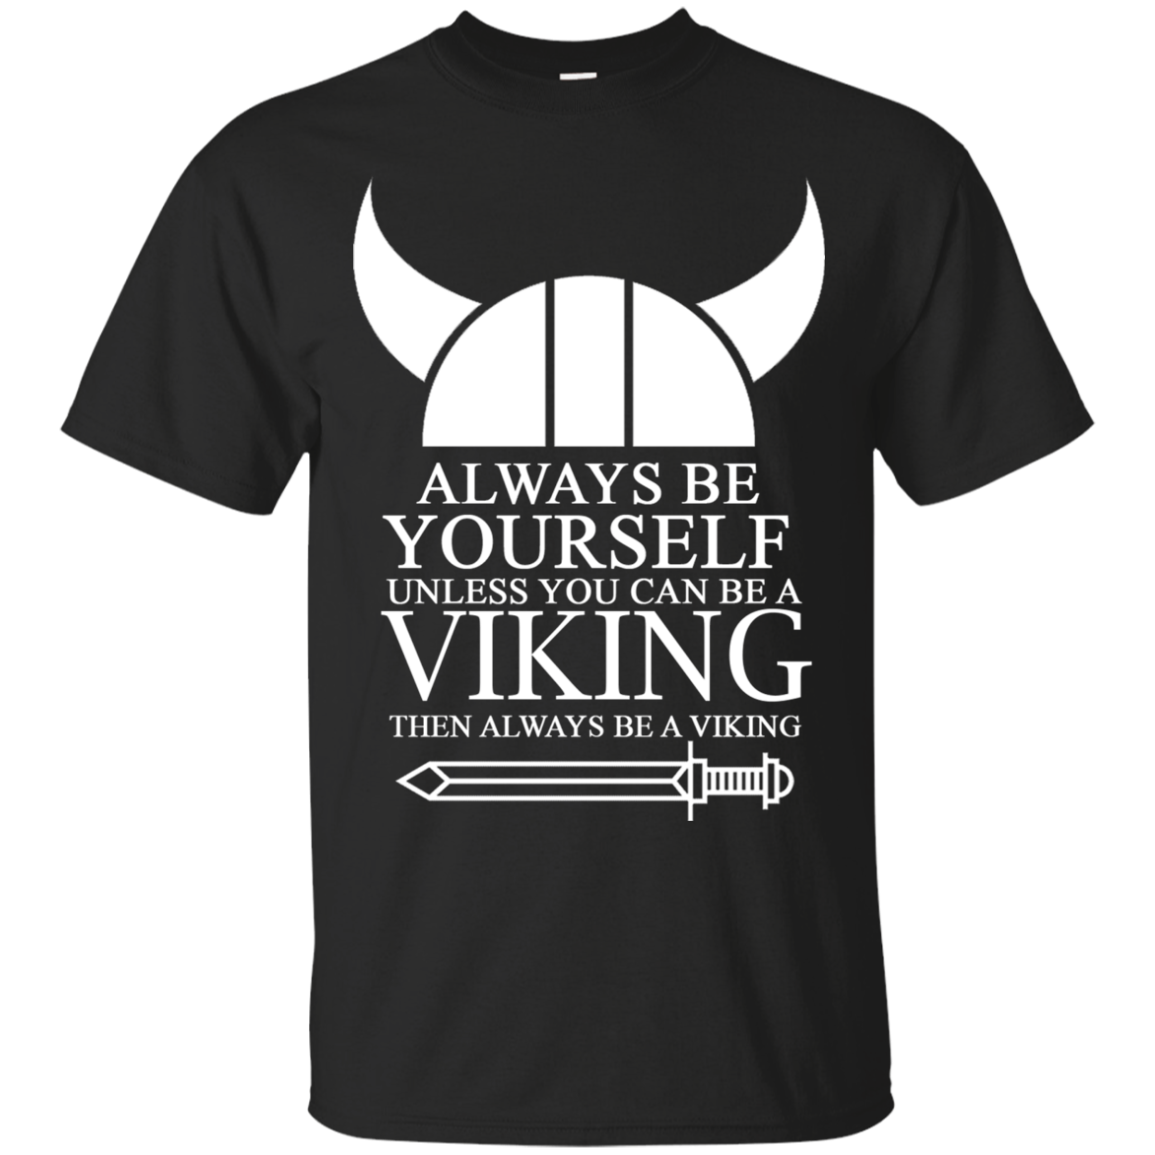 ALWAYS BE YOURSELF UNLESS YOU CAN BE A VIKING THEN ALWAYS BE A V T-Shirt & Hoodie